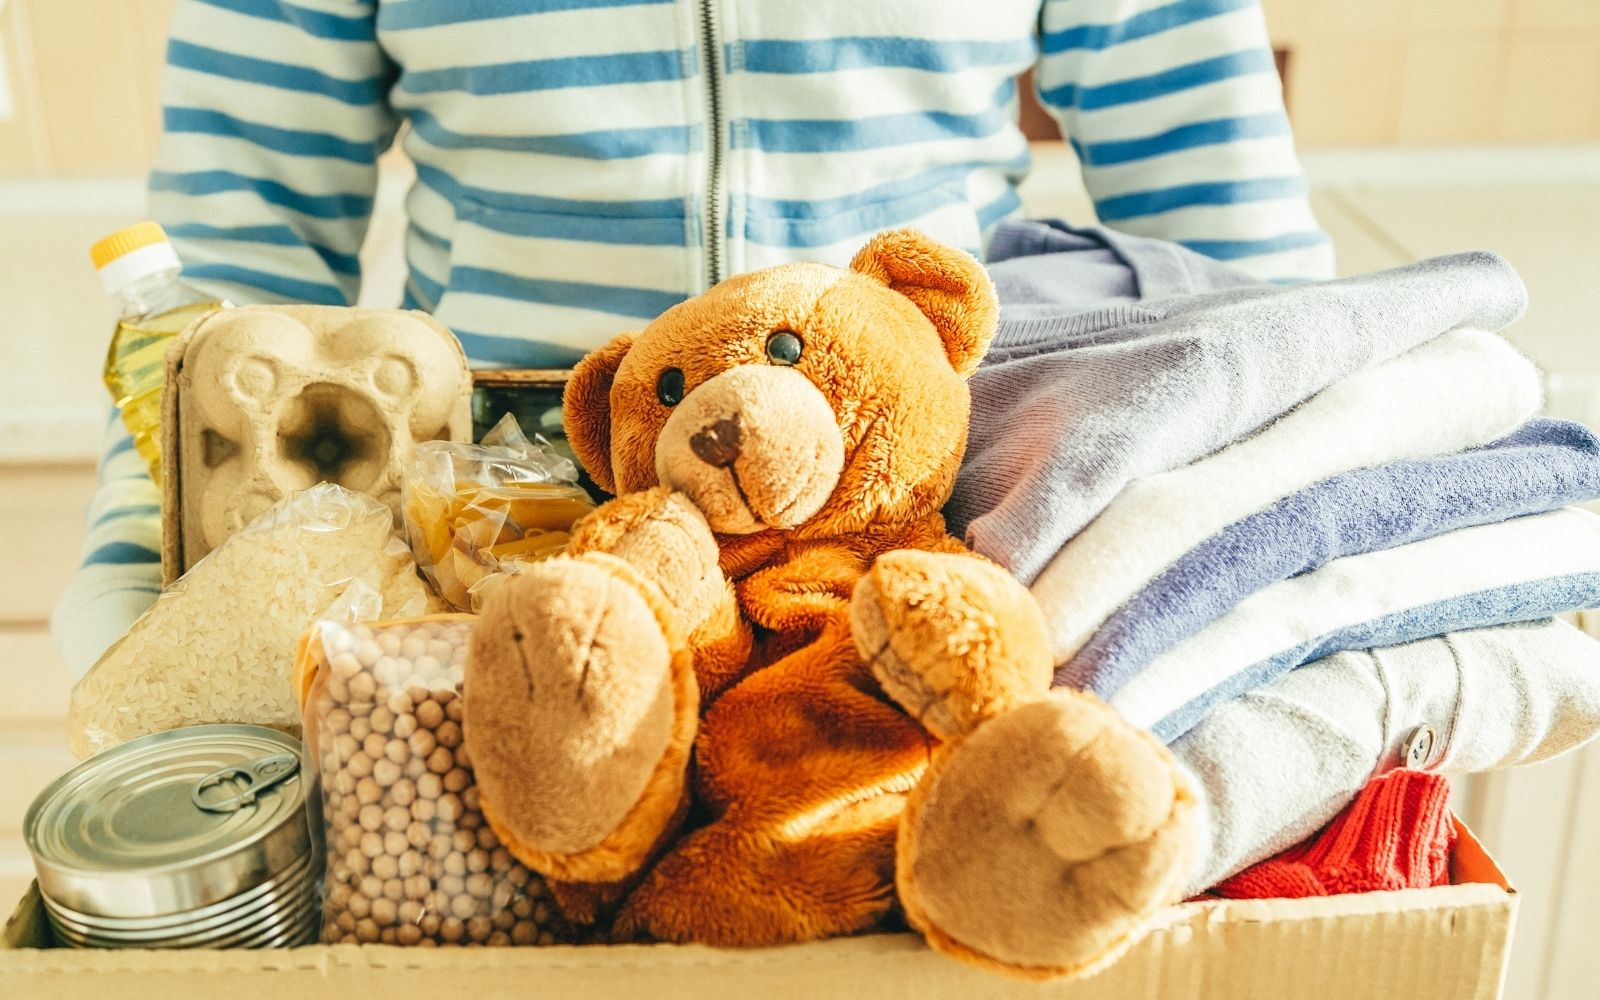 Donate Clothing, Household Items, Stuffed Animals, Games, Toys, and Books